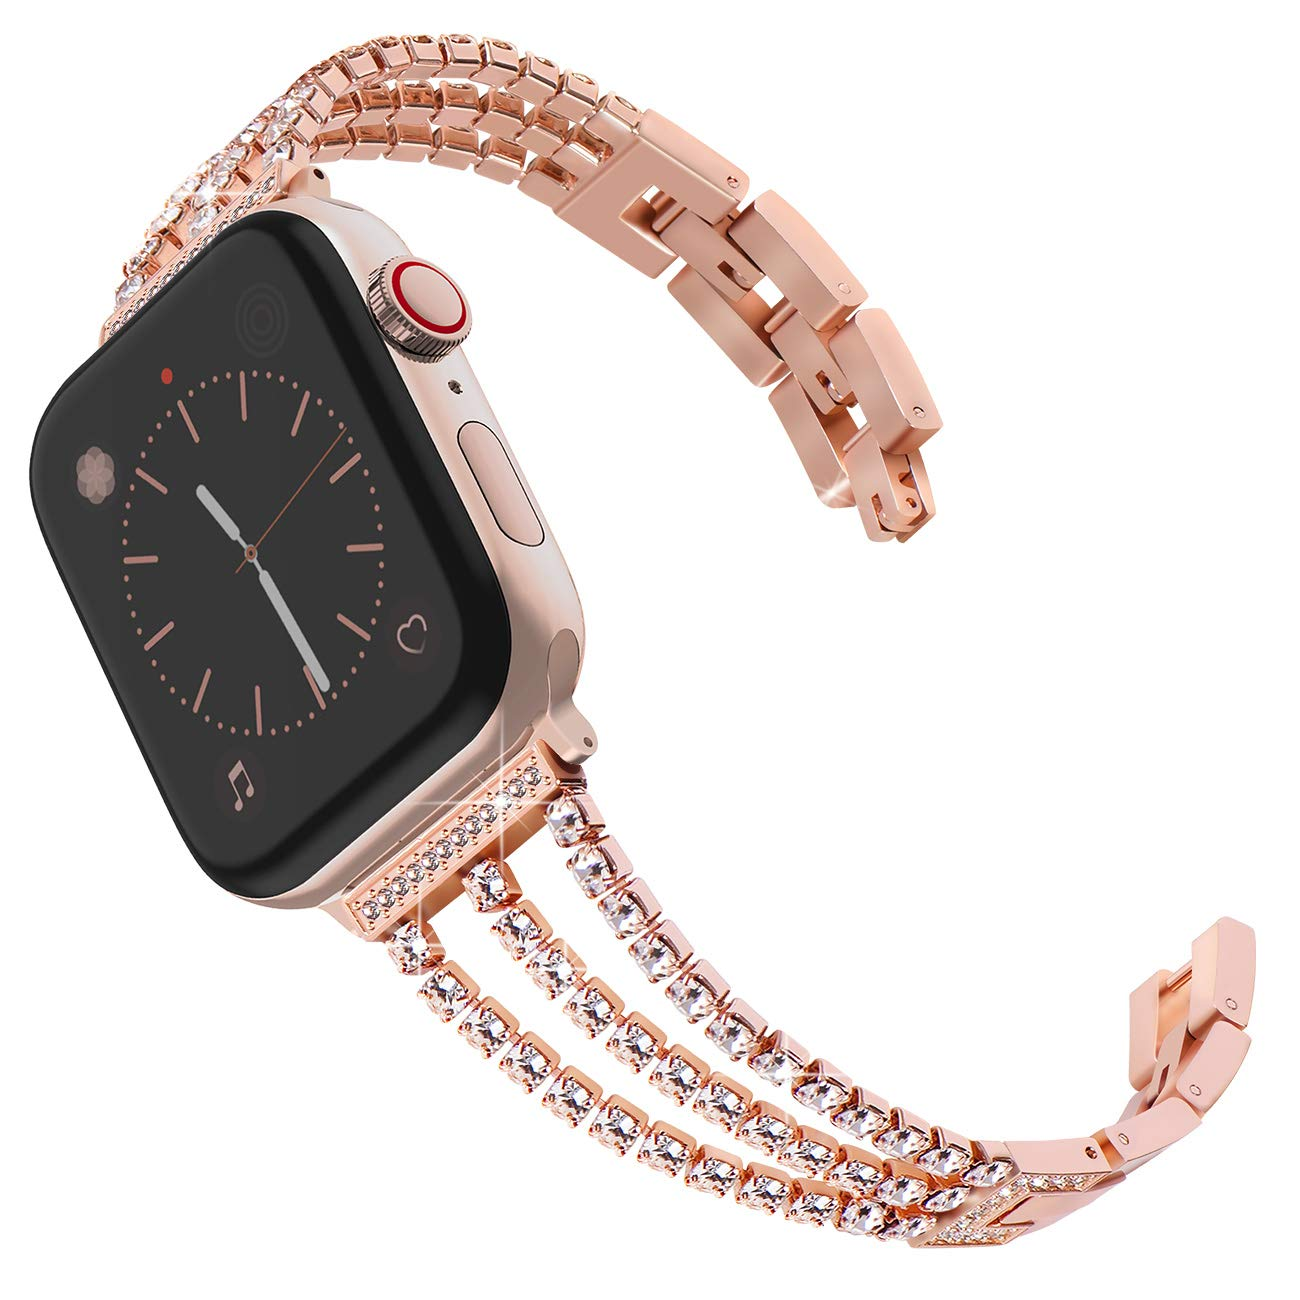 Surace Compatible for Apple Watch Bands 38mm 40mm Women Cuff Bracelet Stainless Steel Band with Diamond Replacement for iWatch 40mm Series 4/3/2/1 Rose Gold